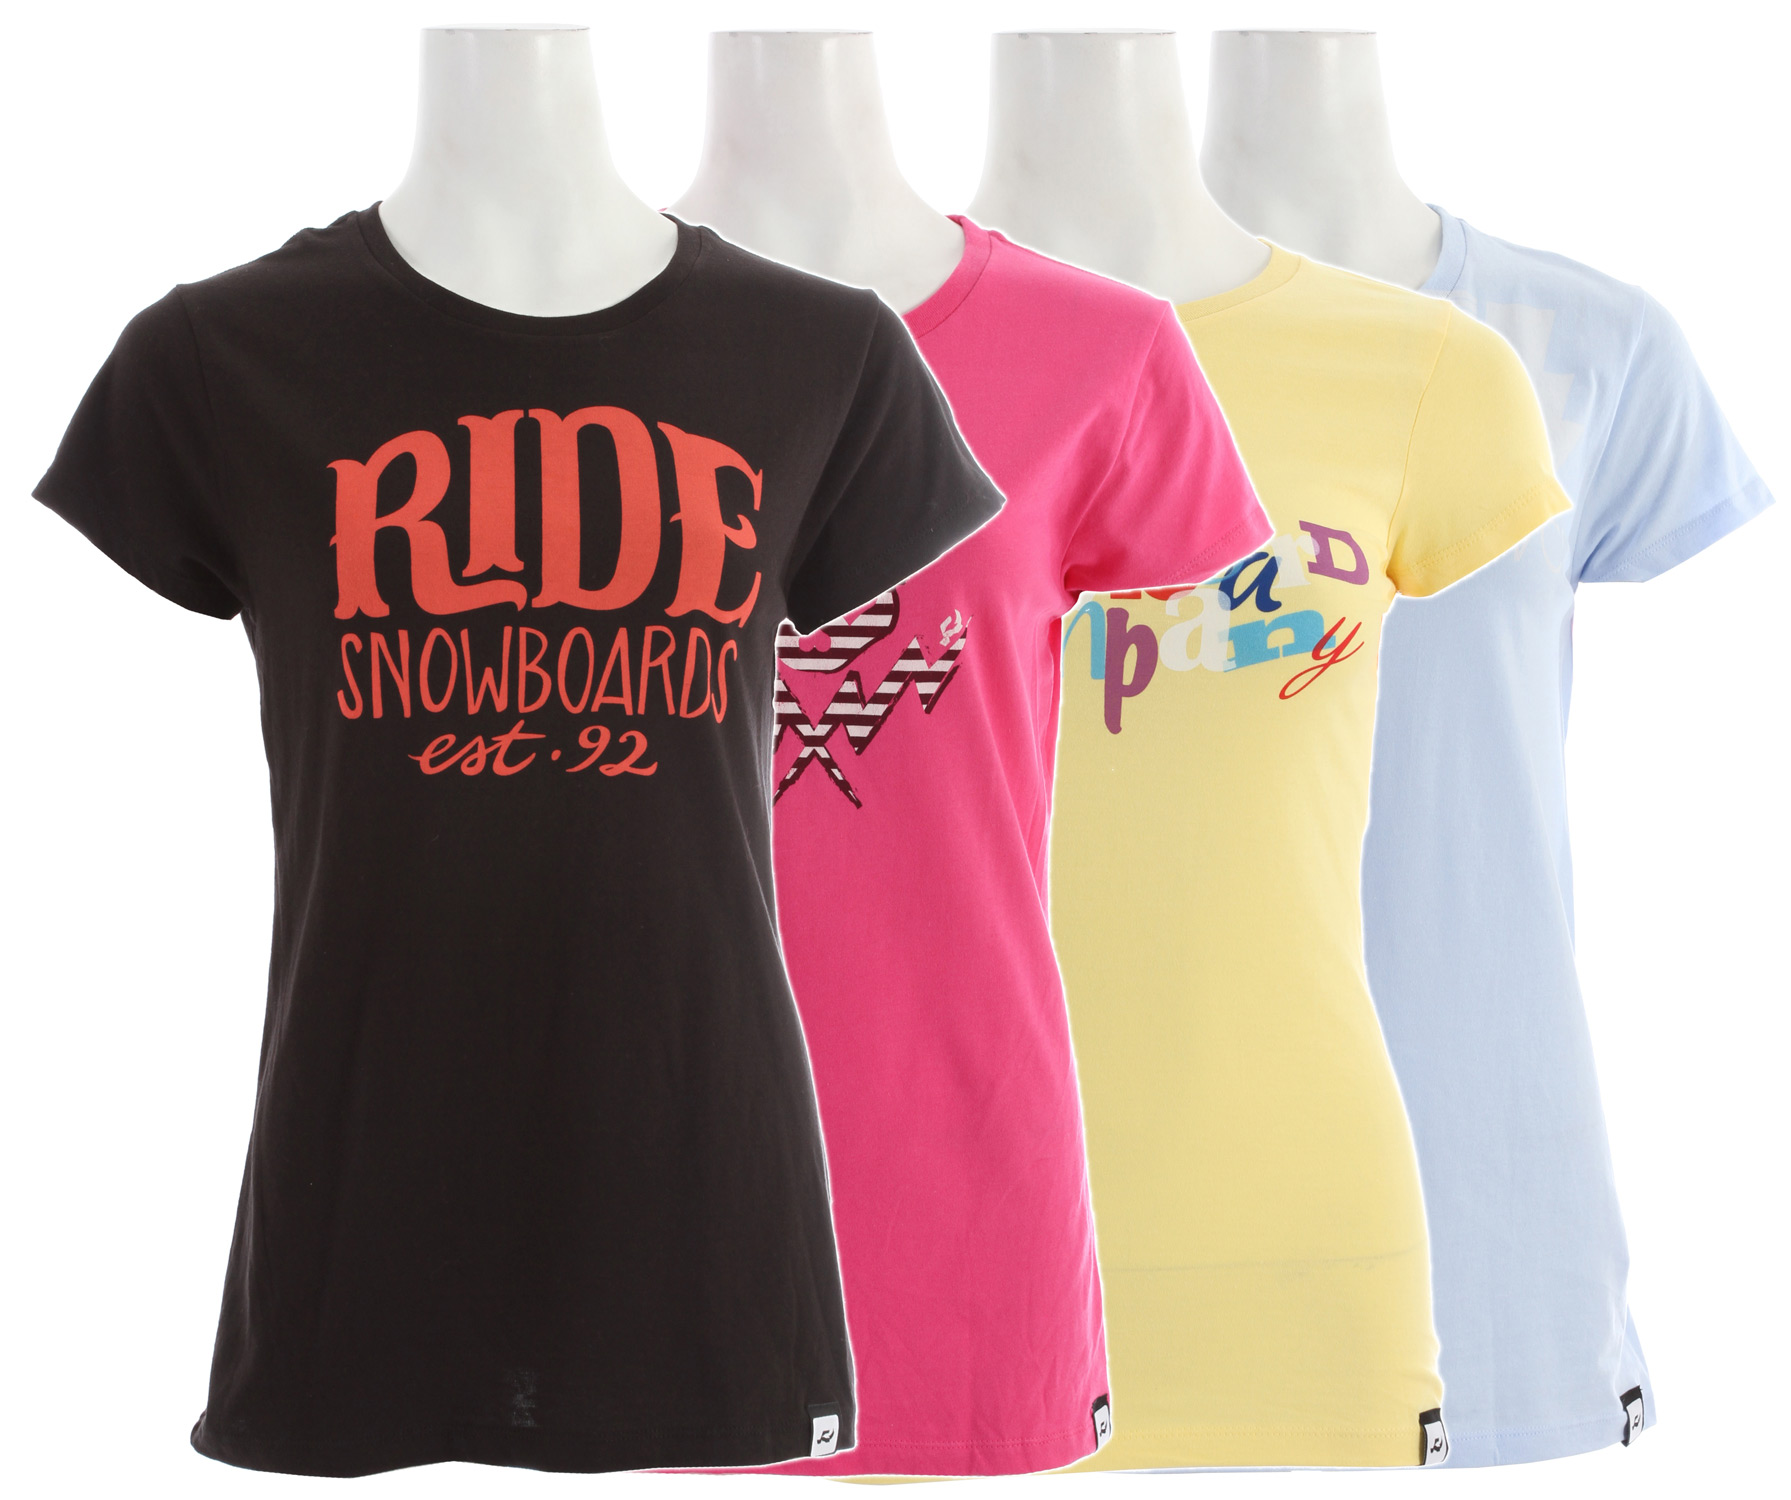 "The Ride Logo 4 Pack T-Shirt has you set for the whole week. Get the shirt you know you want in all it's different shades. Standard ""Ride Snowboard"" logo with the EST. 92 right on the front. It's unique and comfortable feel will makes its way into you home away from home. With proven quality and proven style, you will know why you're getting four!Key Features of the Ride Logo 4 Pack T-Shirt:  Short Sleeve  Silkscreen  100% Cotton - $52.95"